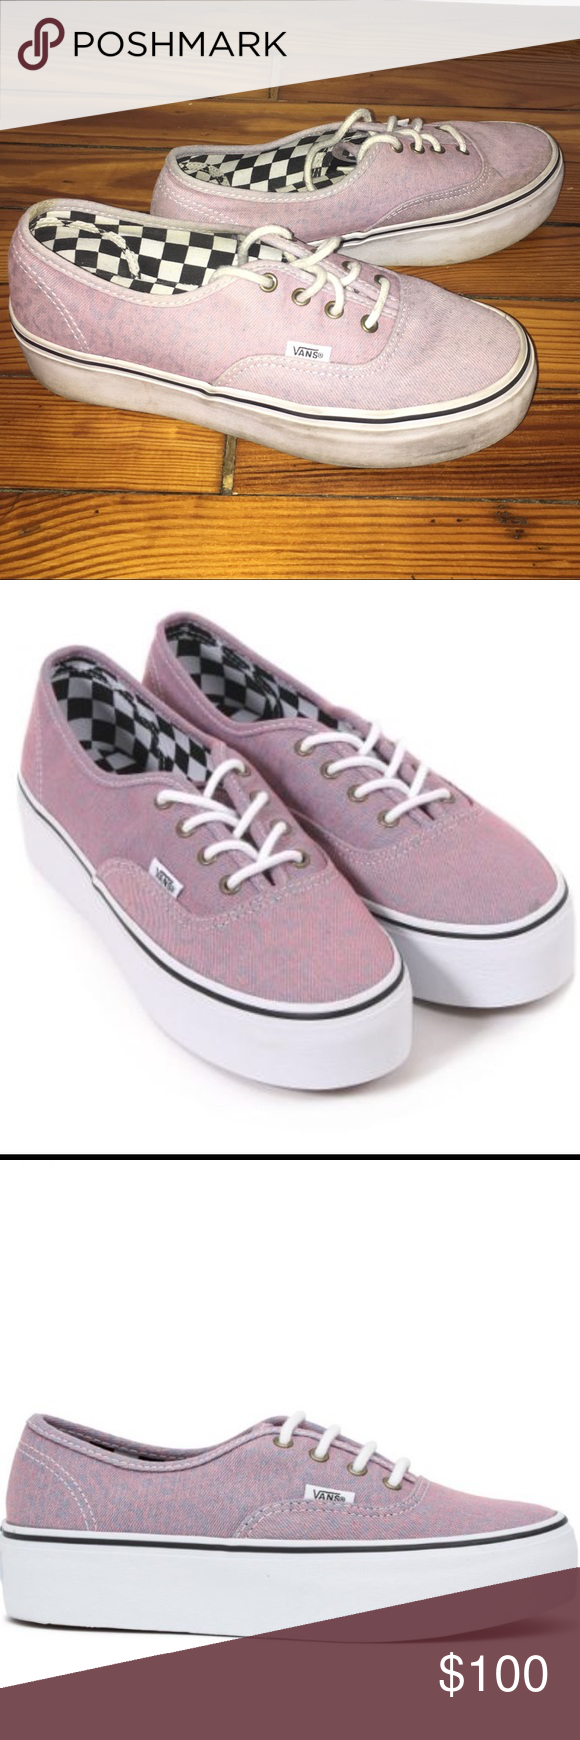 774b512372 Vans Platform Acid Wash Pink Denim Sneakers RARE Authentic Platform Vans in  Pink Acid Wash Denim